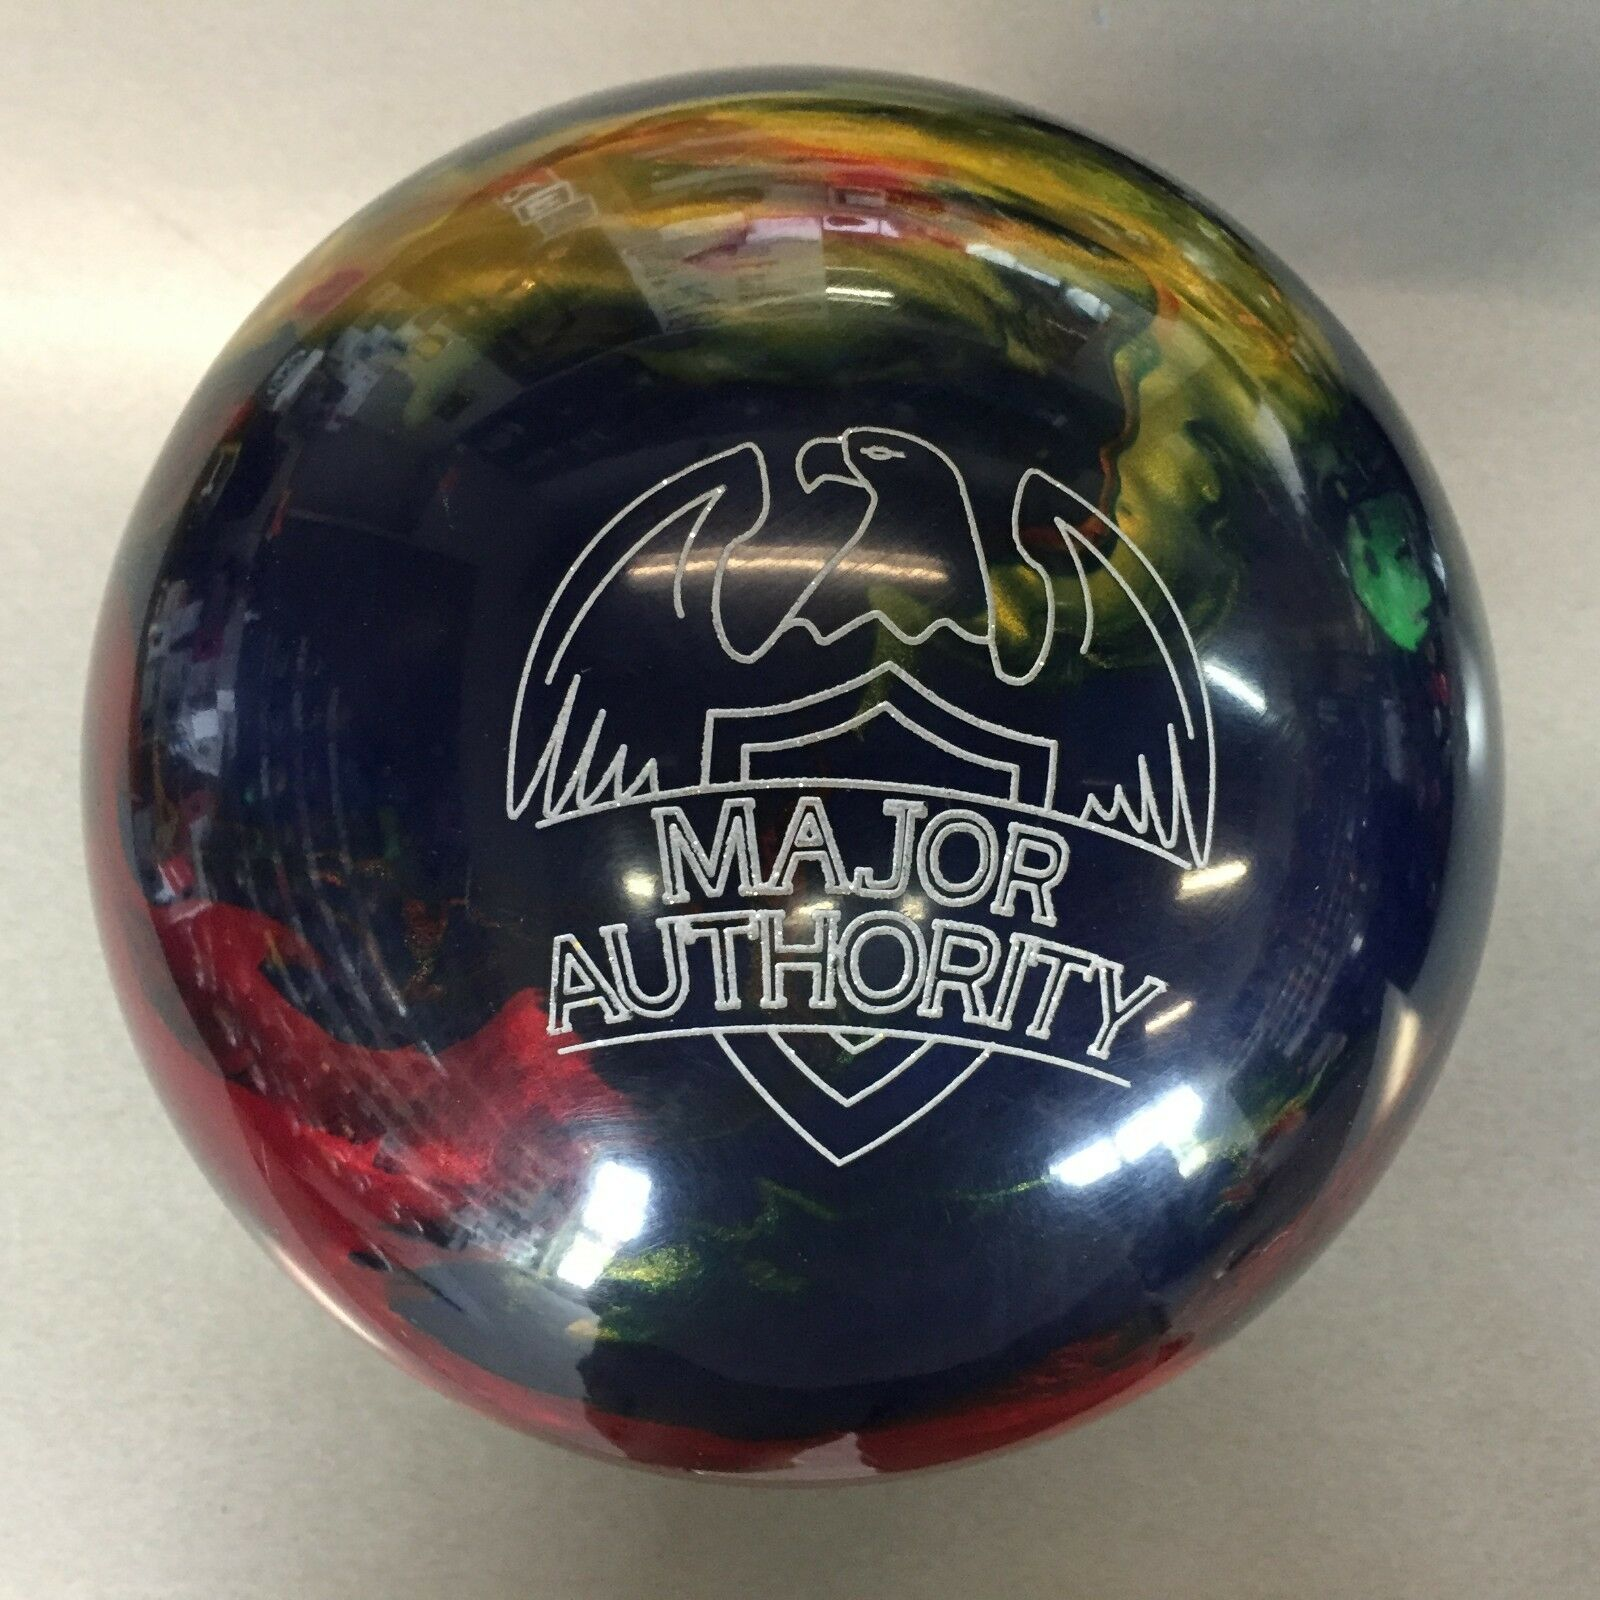 redO GRIP MAJOR AUTHORITY  1ST QUALITY   bowling  ball 12  LB.   NEW IN BOX